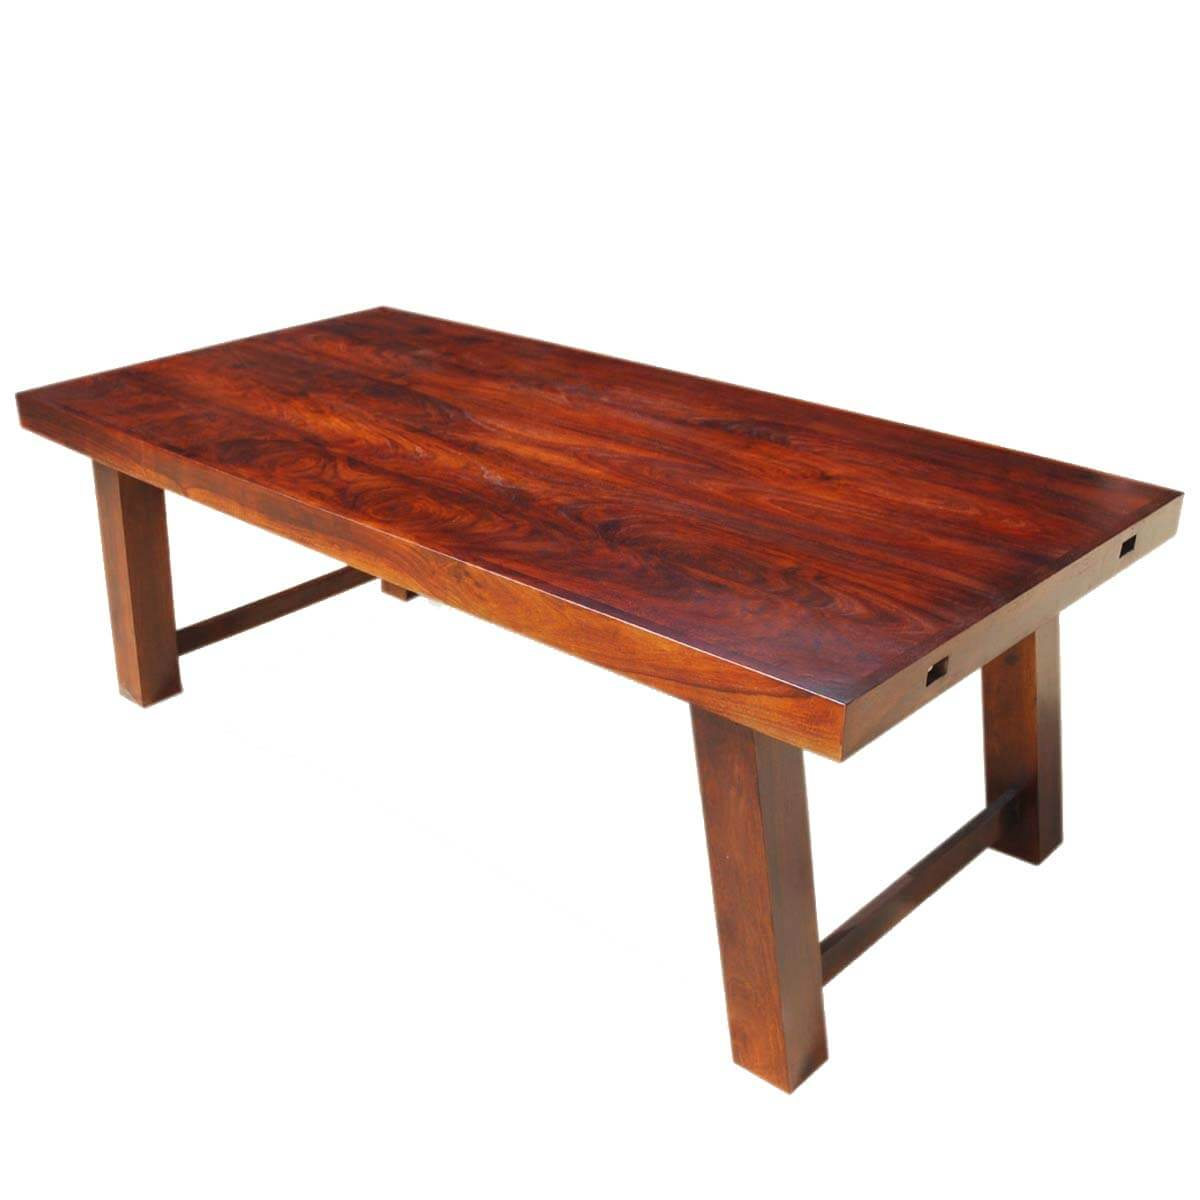 Rustic Wooden Dining Tables ~ Sierra nevada rustic solid wood large extension dining table